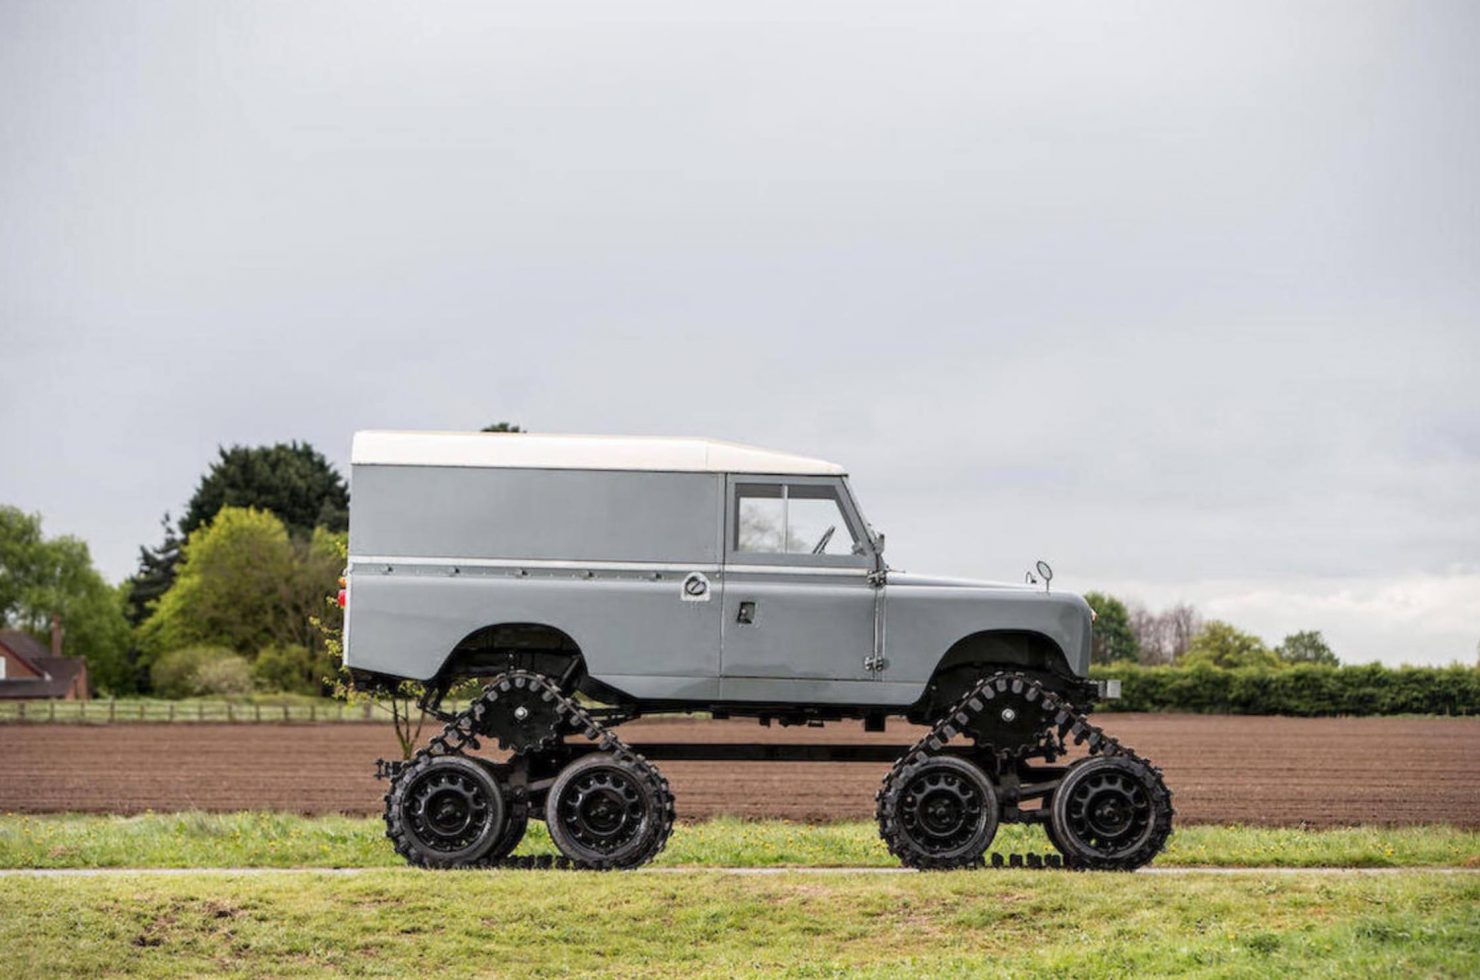 land rover Cuthbertson 6 1480x980 - 1958 Tracked Cuthbertson Land Rover